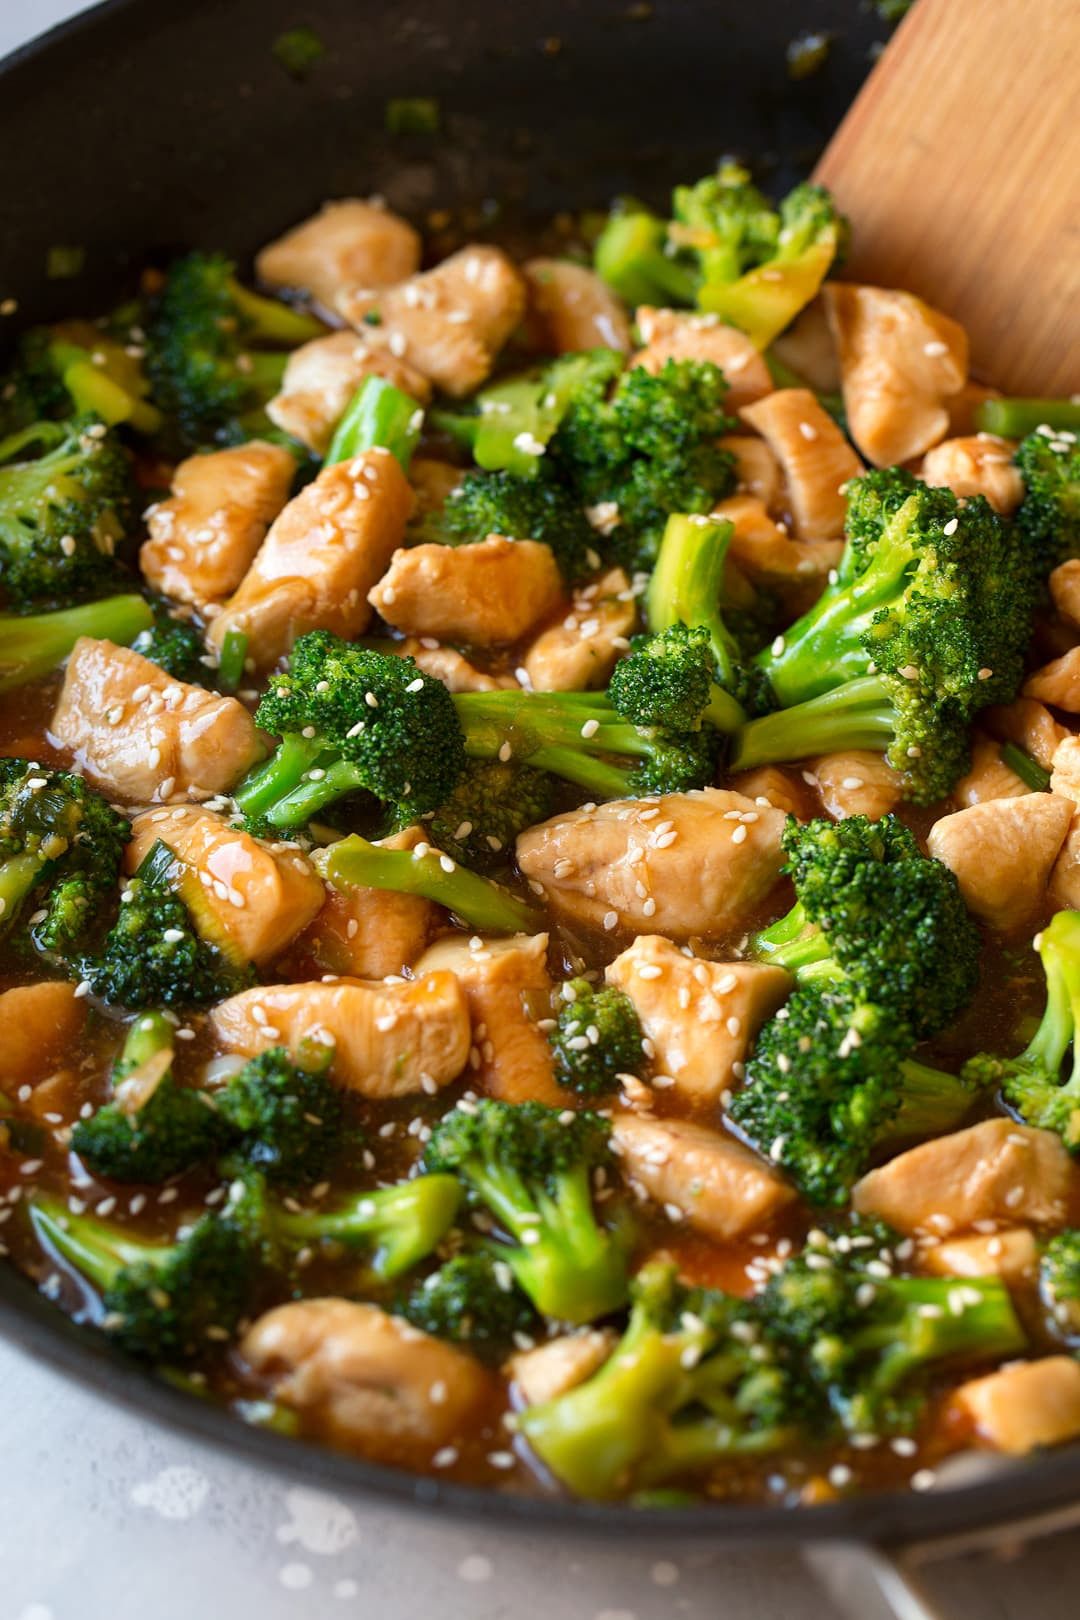 Chicken And Broccoli Recipes  Chicken and Broccoli Stir Fry Cooking Classy